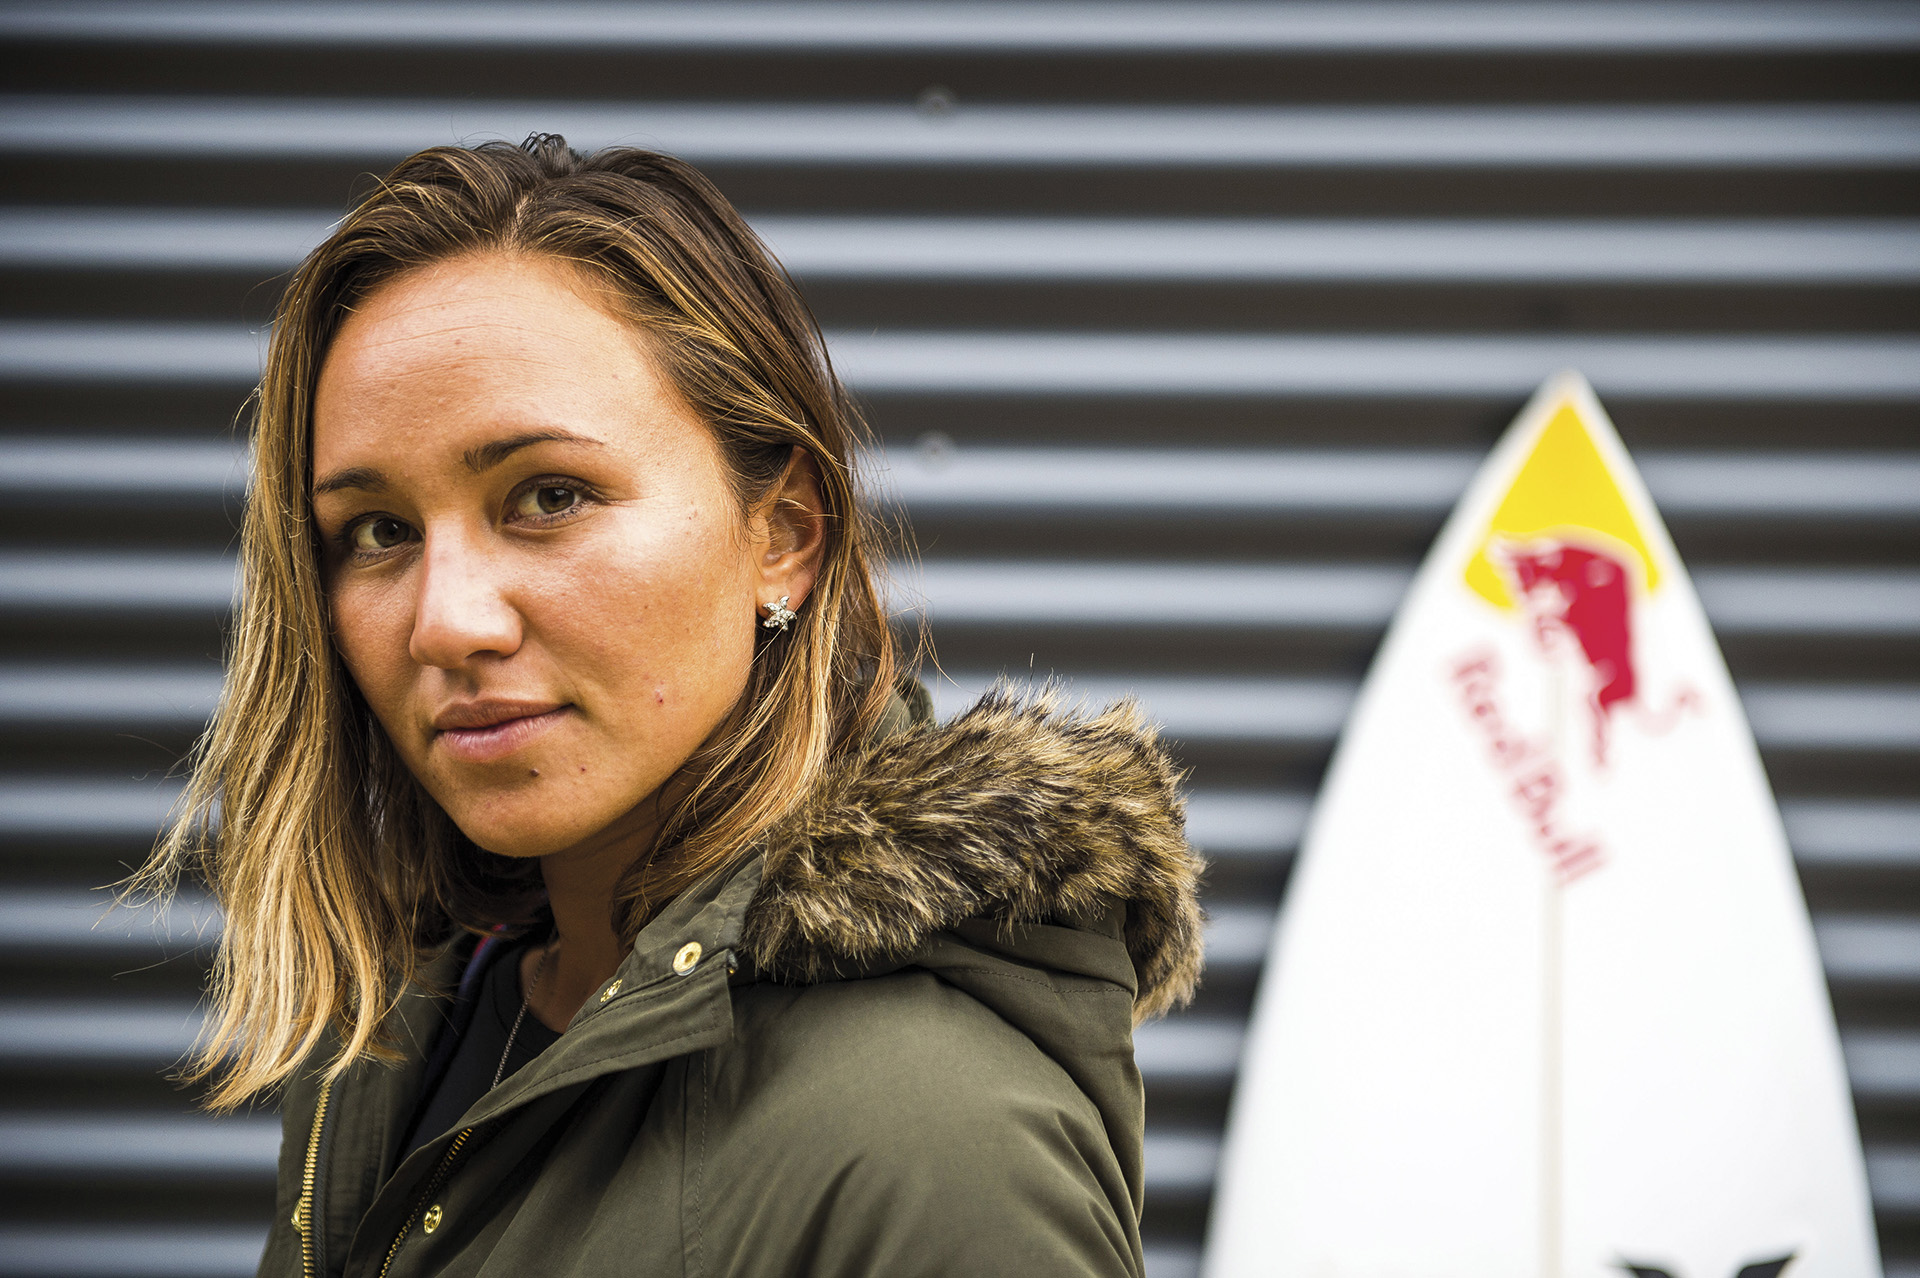 Carissa Moore poses for a Portrait in Torquay, Australia on April 11, 2015 // Ryan Miller/Red Bull Content Pool // P-20150421-00265 // Usage for editorial use only // Please go to www.redbullcontentpool.com for further information. //